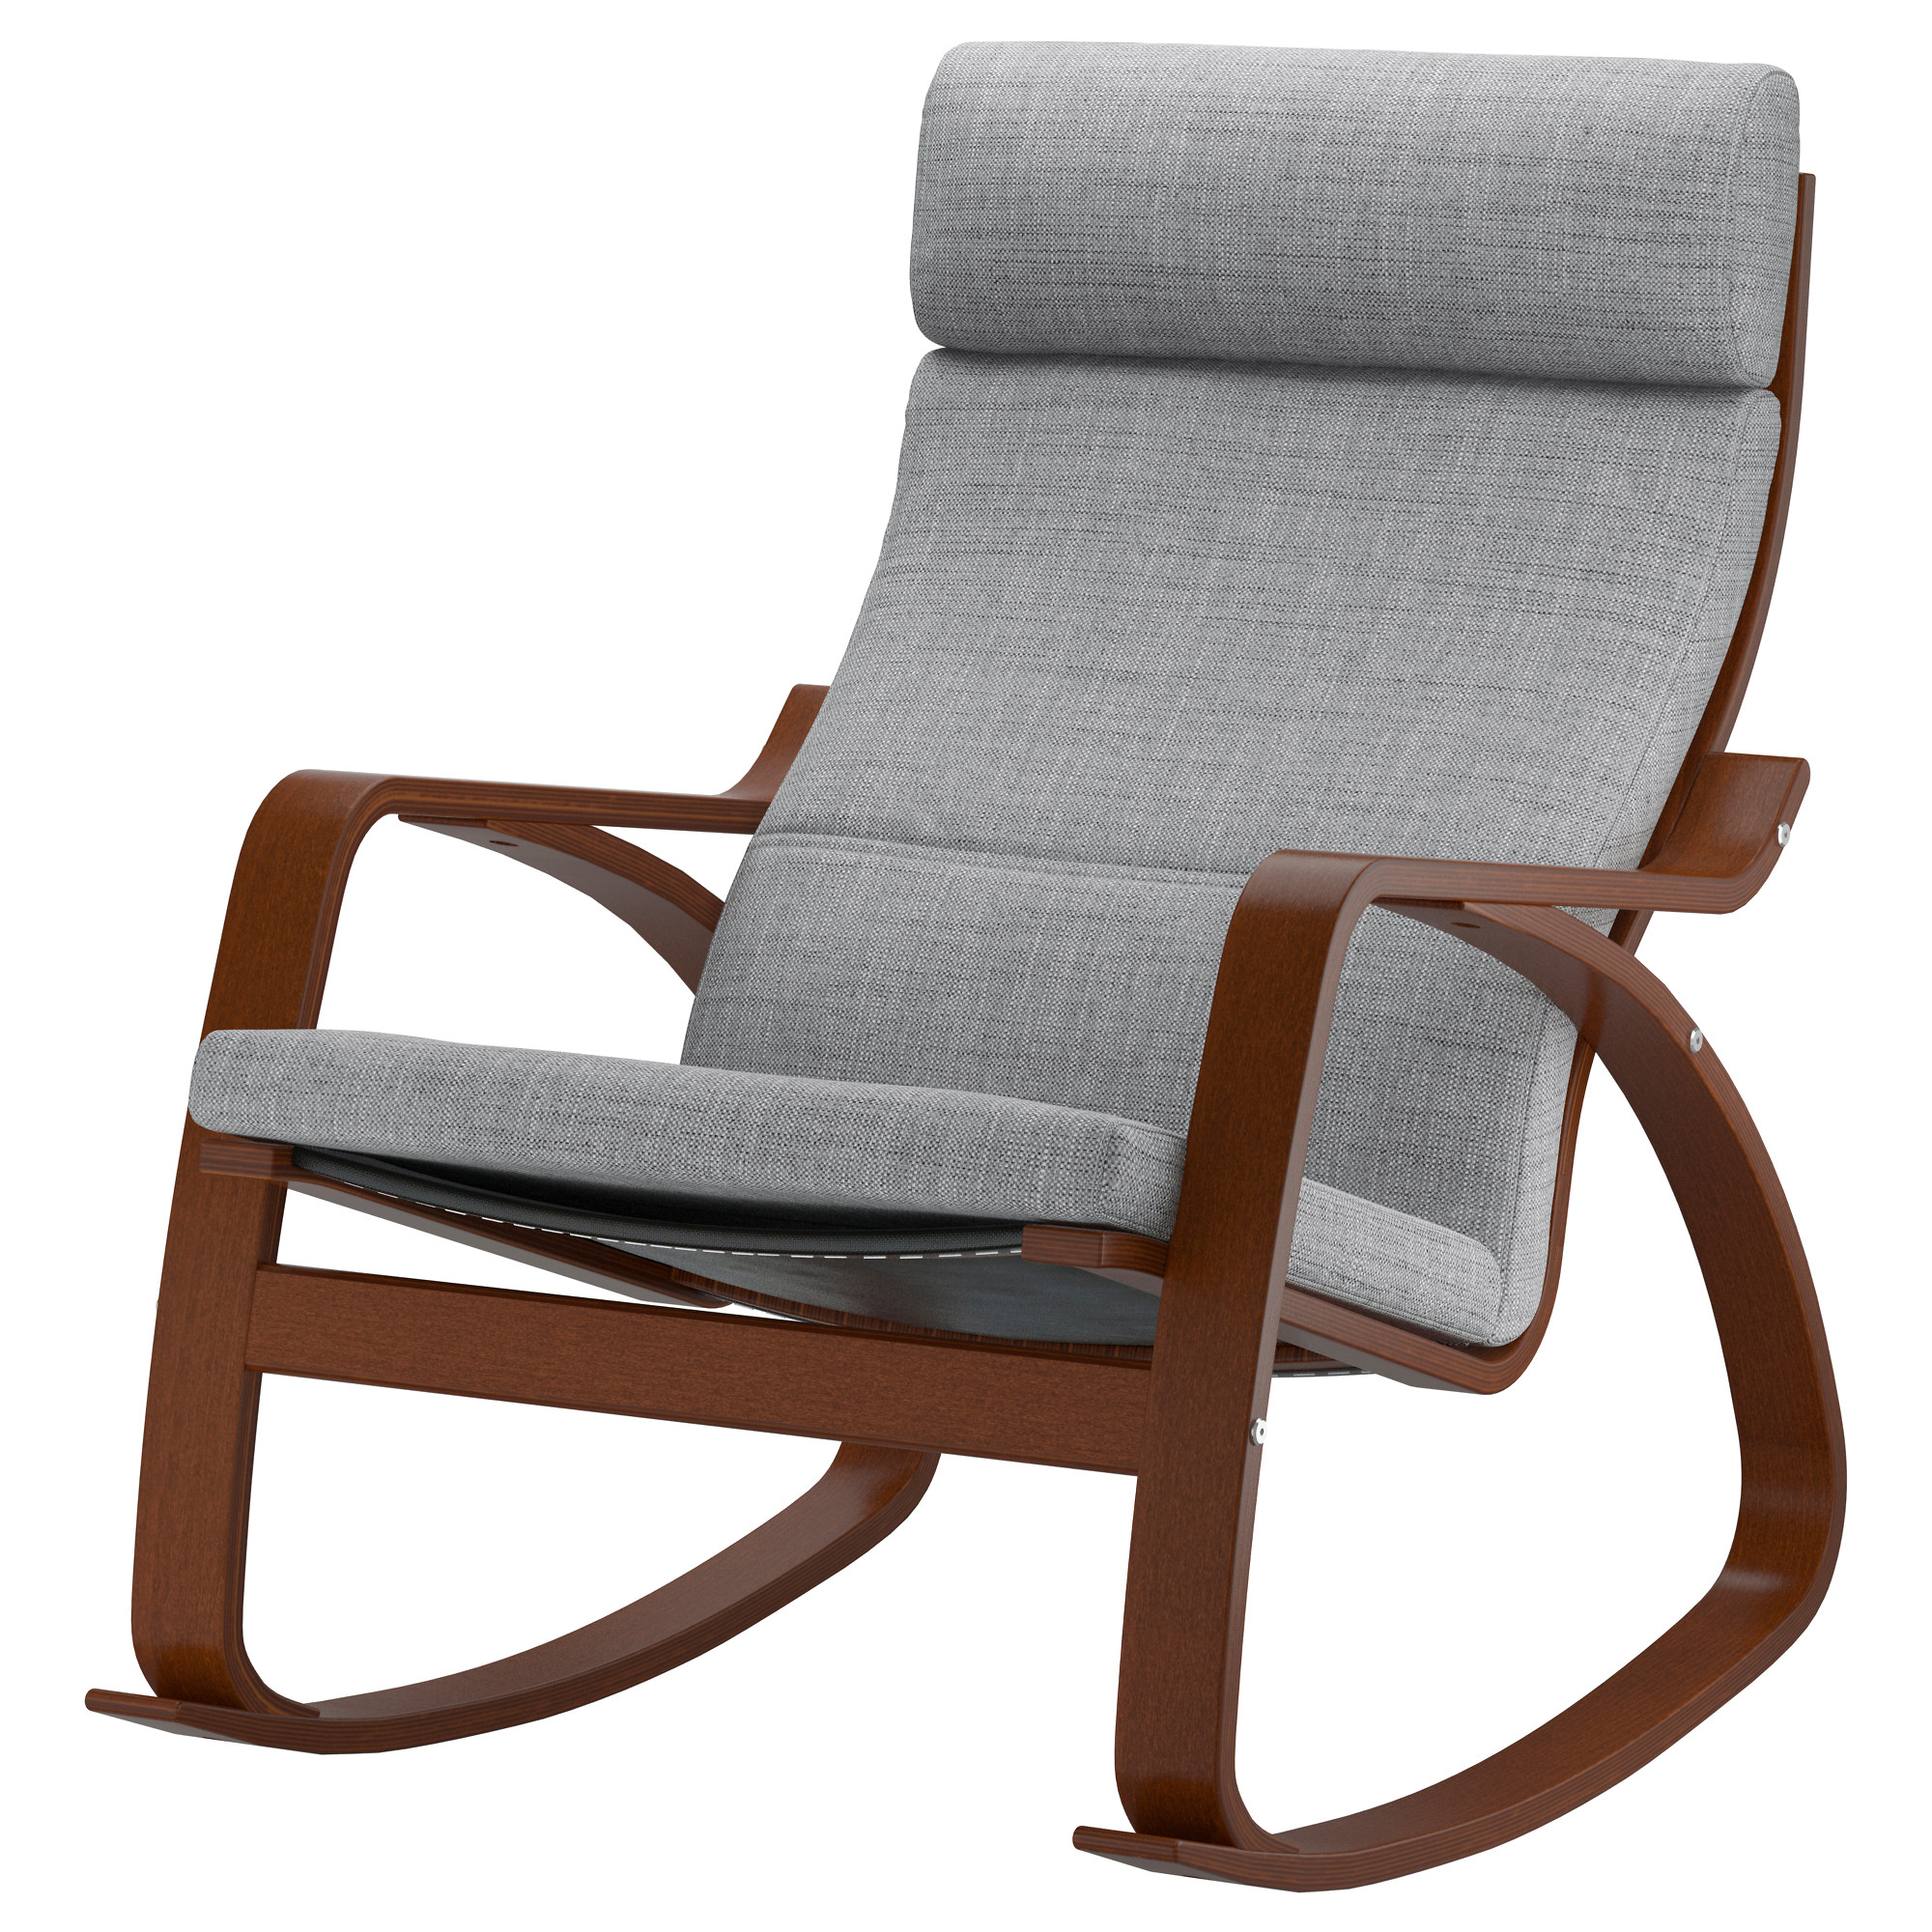 Ikea lillberg rocking chair - Ikea Lillberg Rocking Chair 11